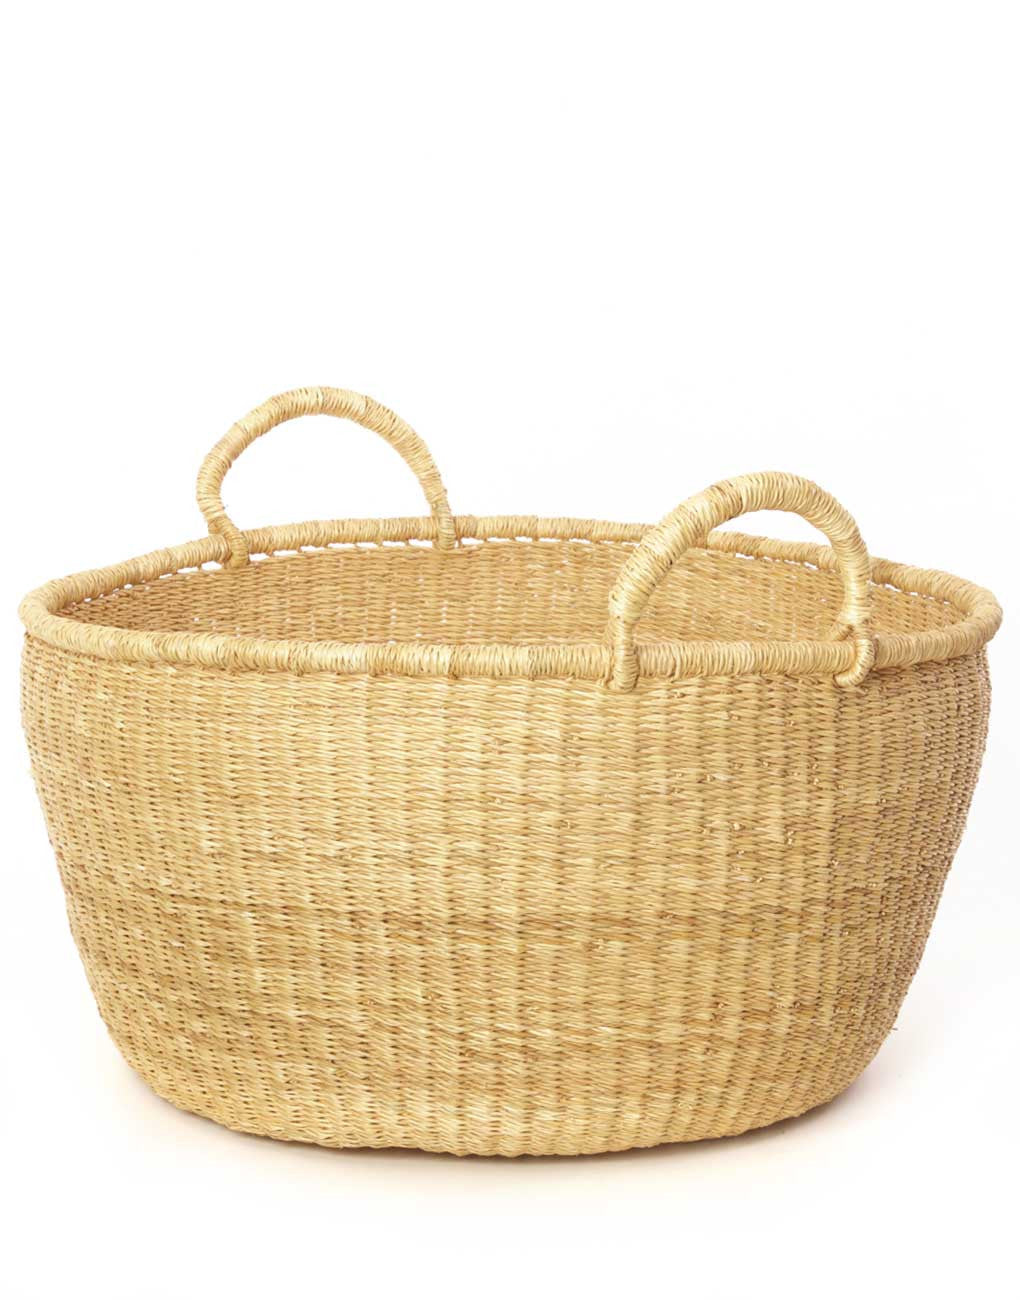 Fair Trade, Handwoven, Oversized Tan Market Basket